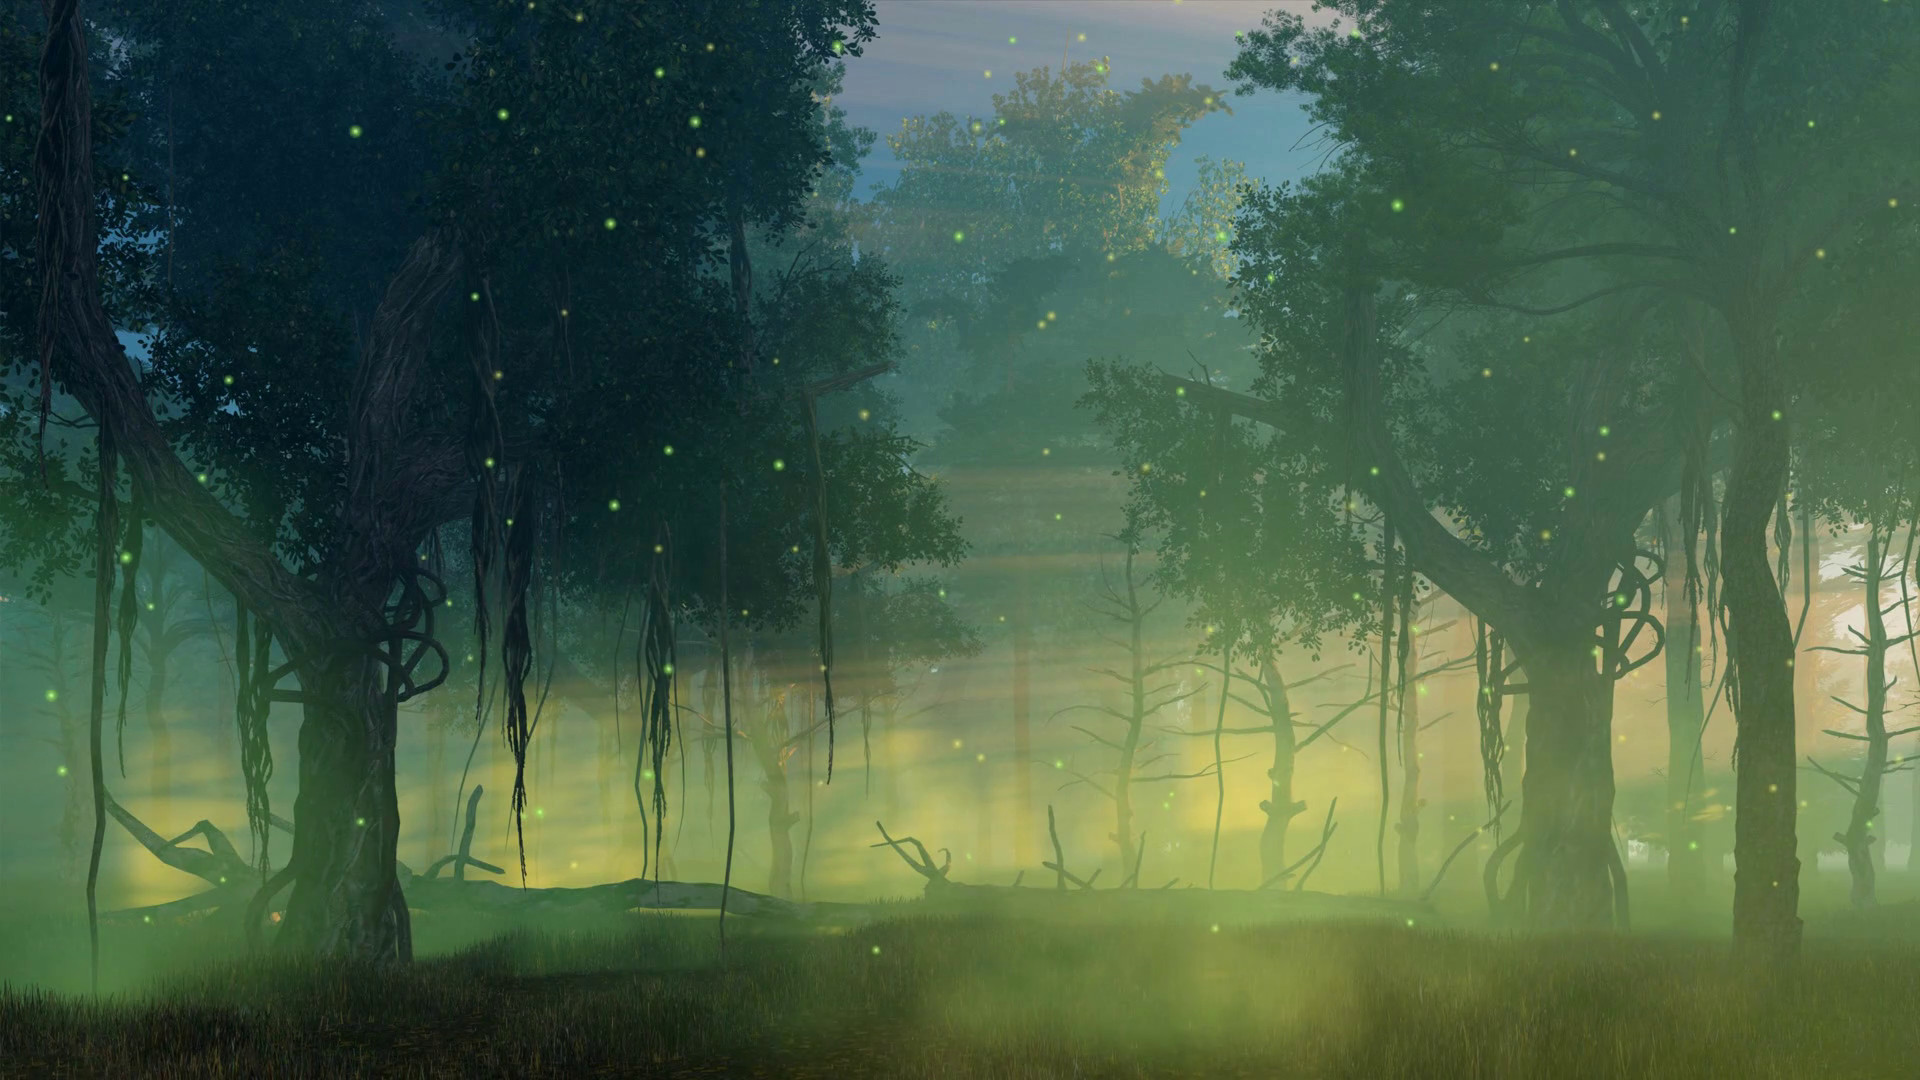 1920x1080 Fairytale woodland scenery with magic firefly lights flying in the air in a  scary misty night forest. Cinemagraph style fantasy animation rendered in  4K ...